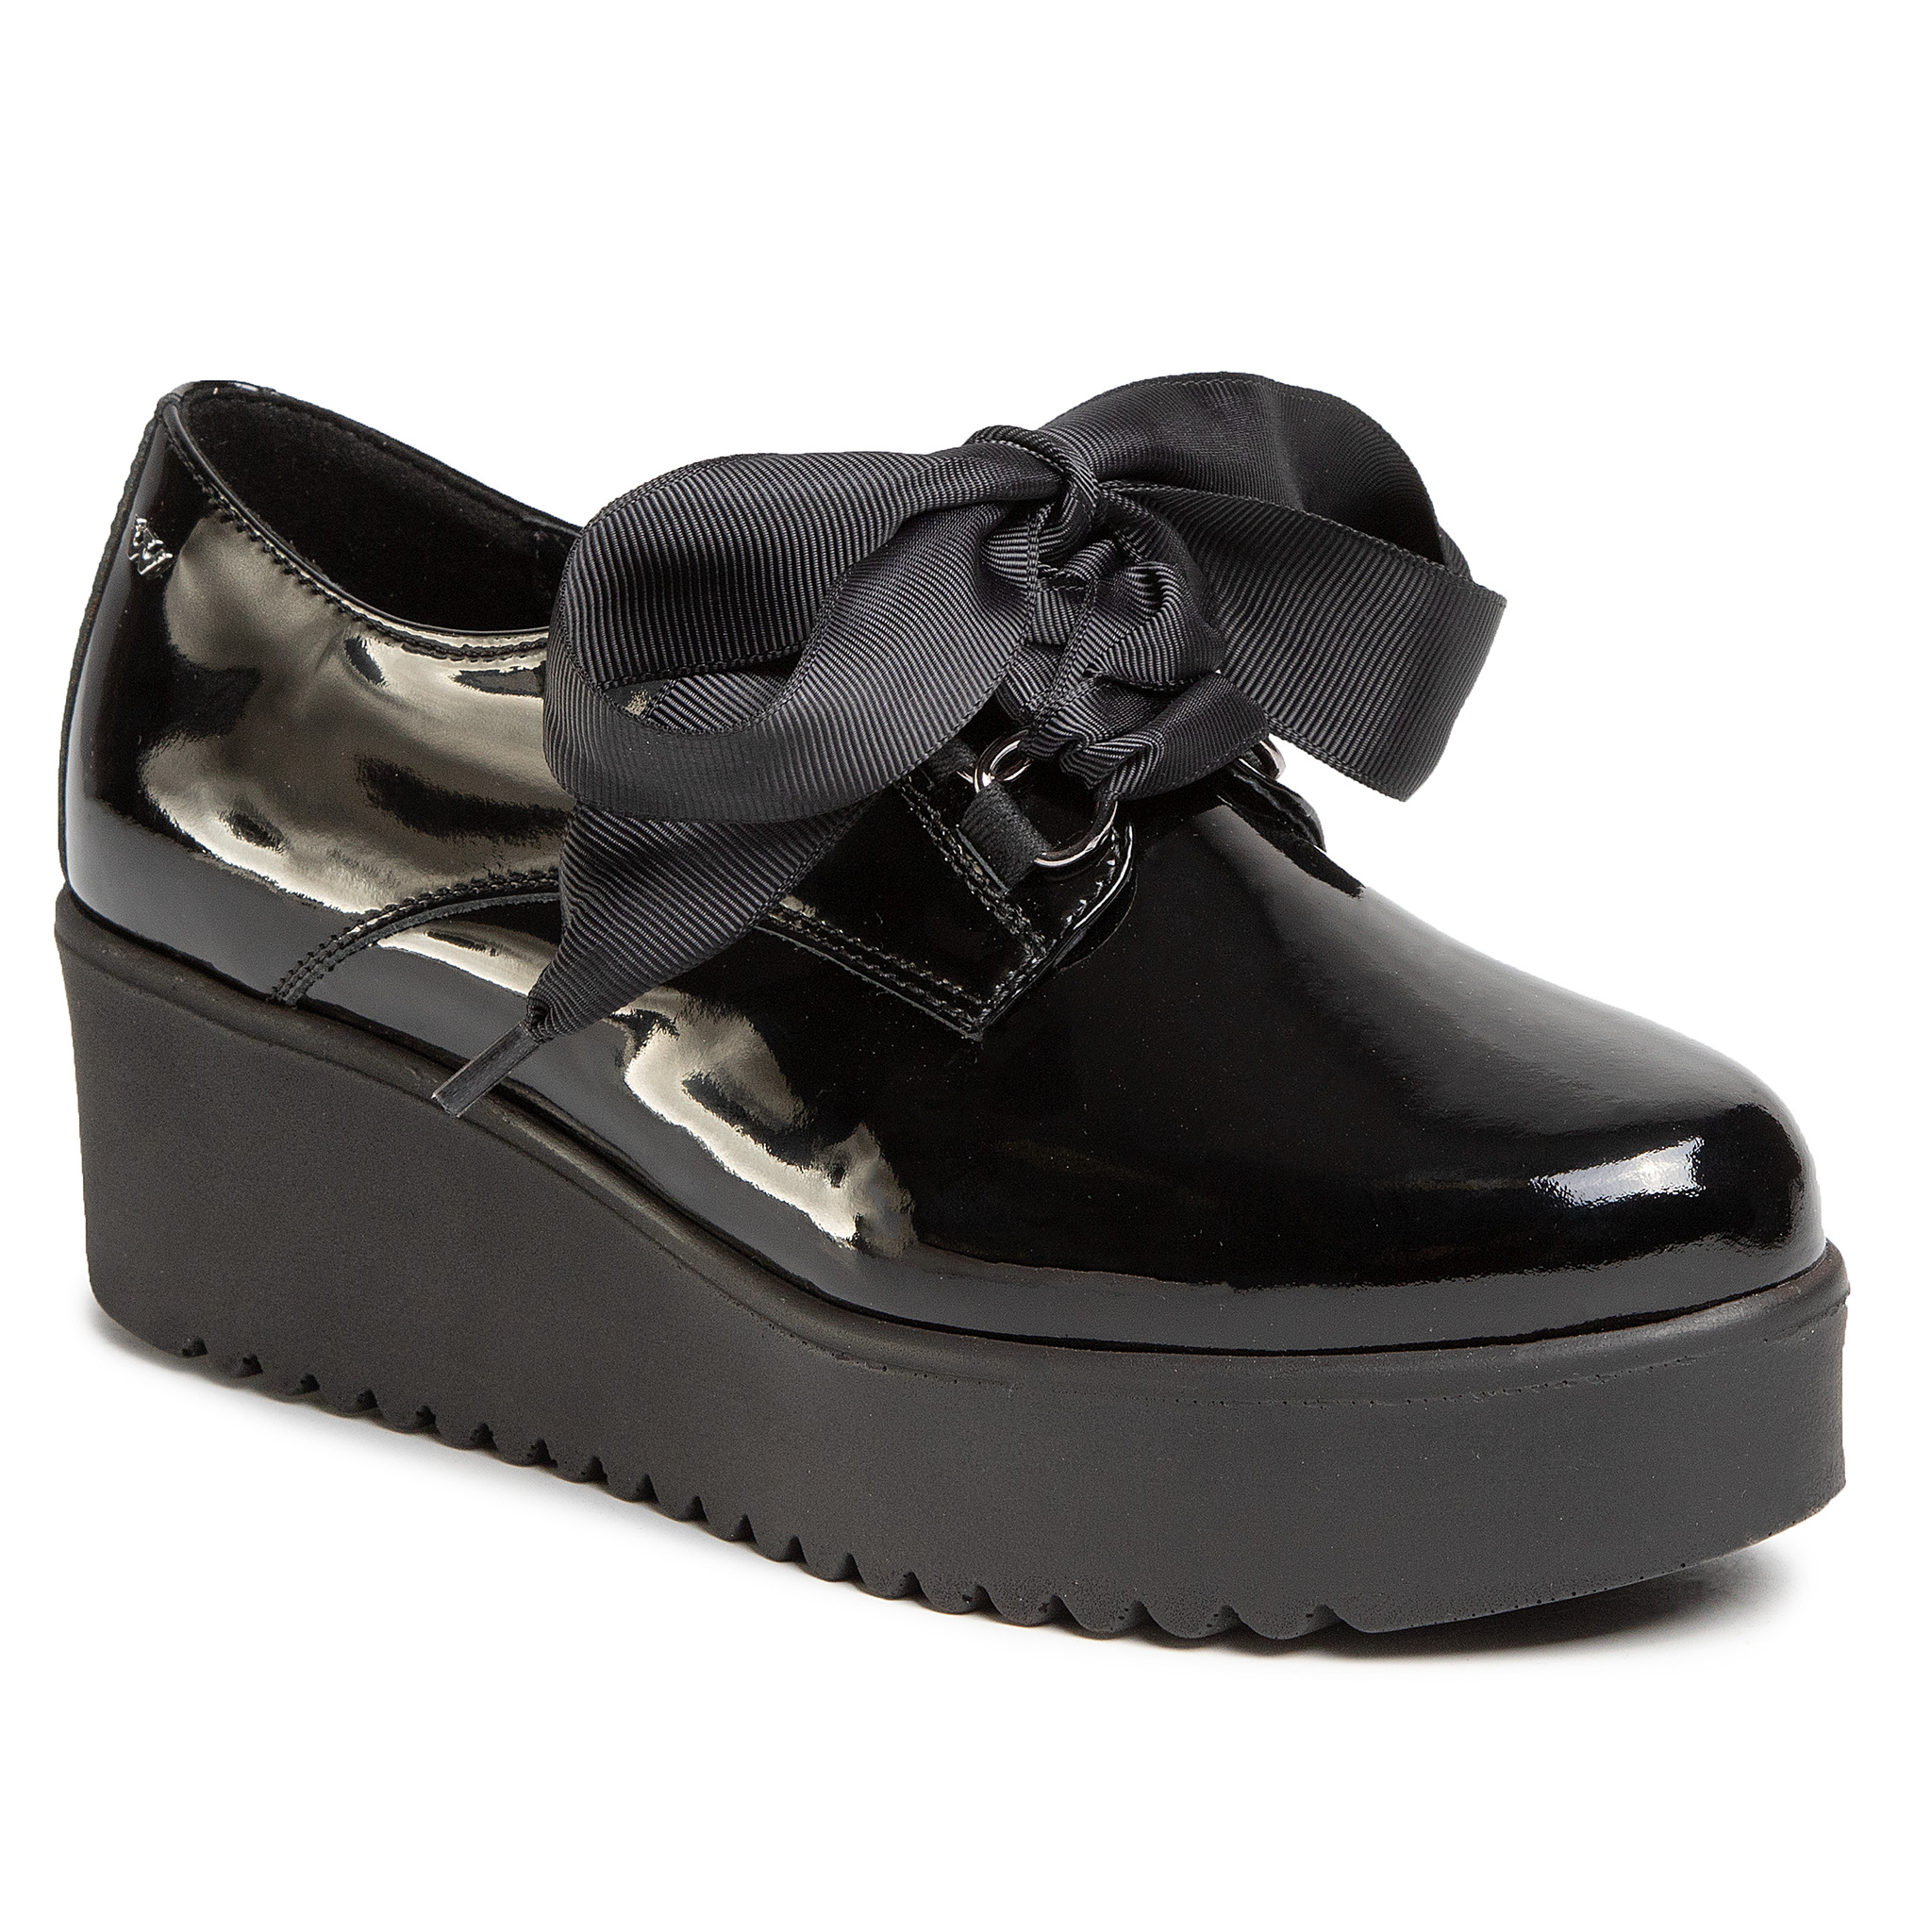 Oxford Wojas - 46043-31 Negru imagine epantofi.ro 2021